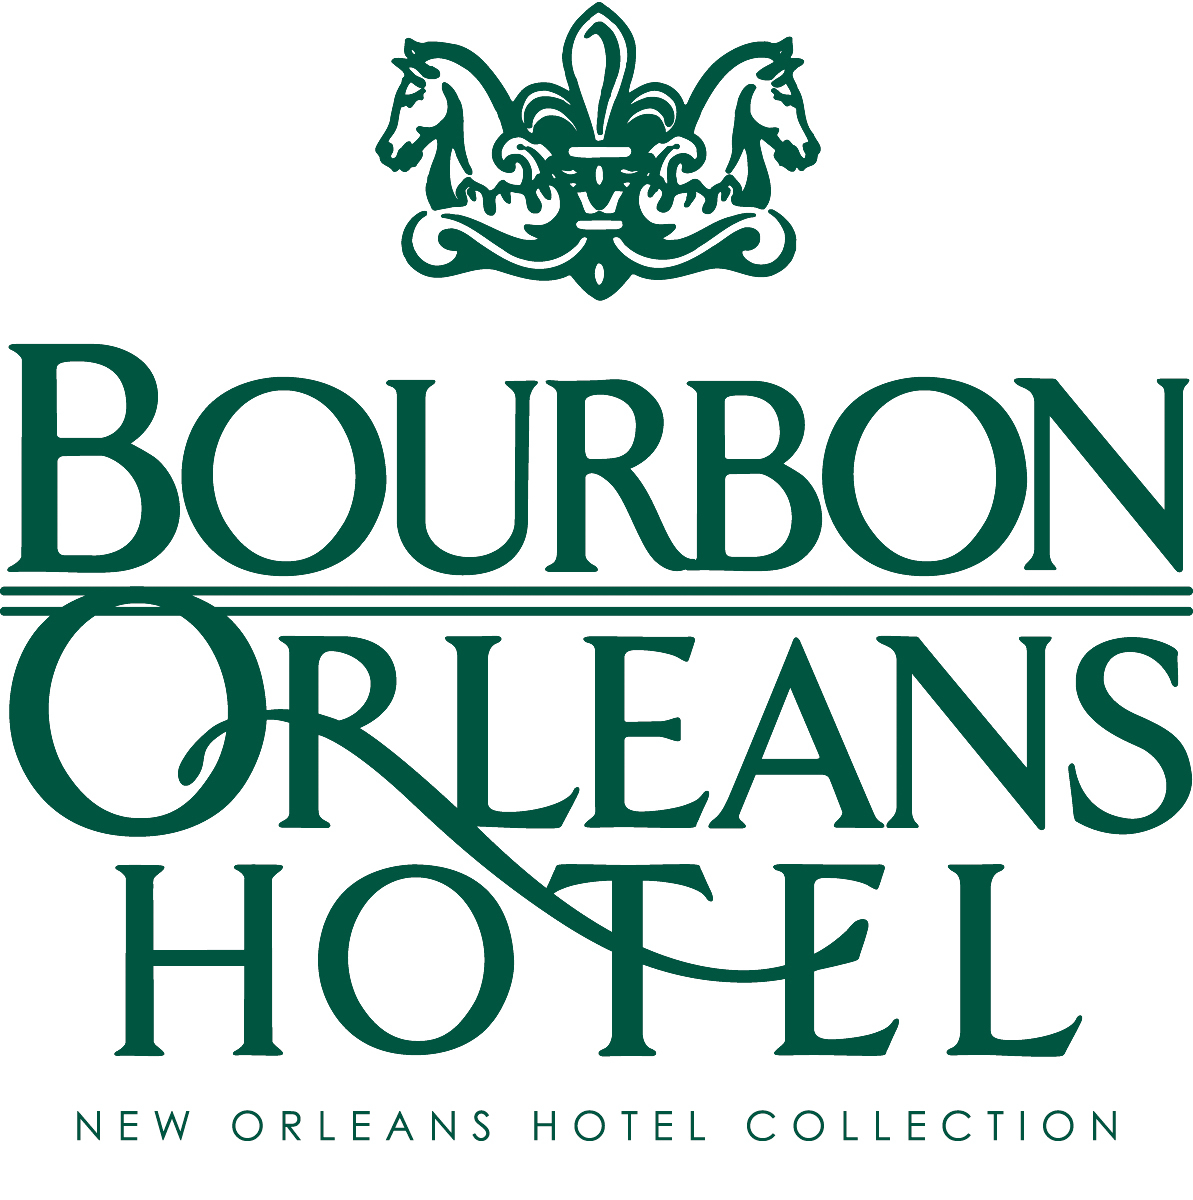 New orleans deals coupons